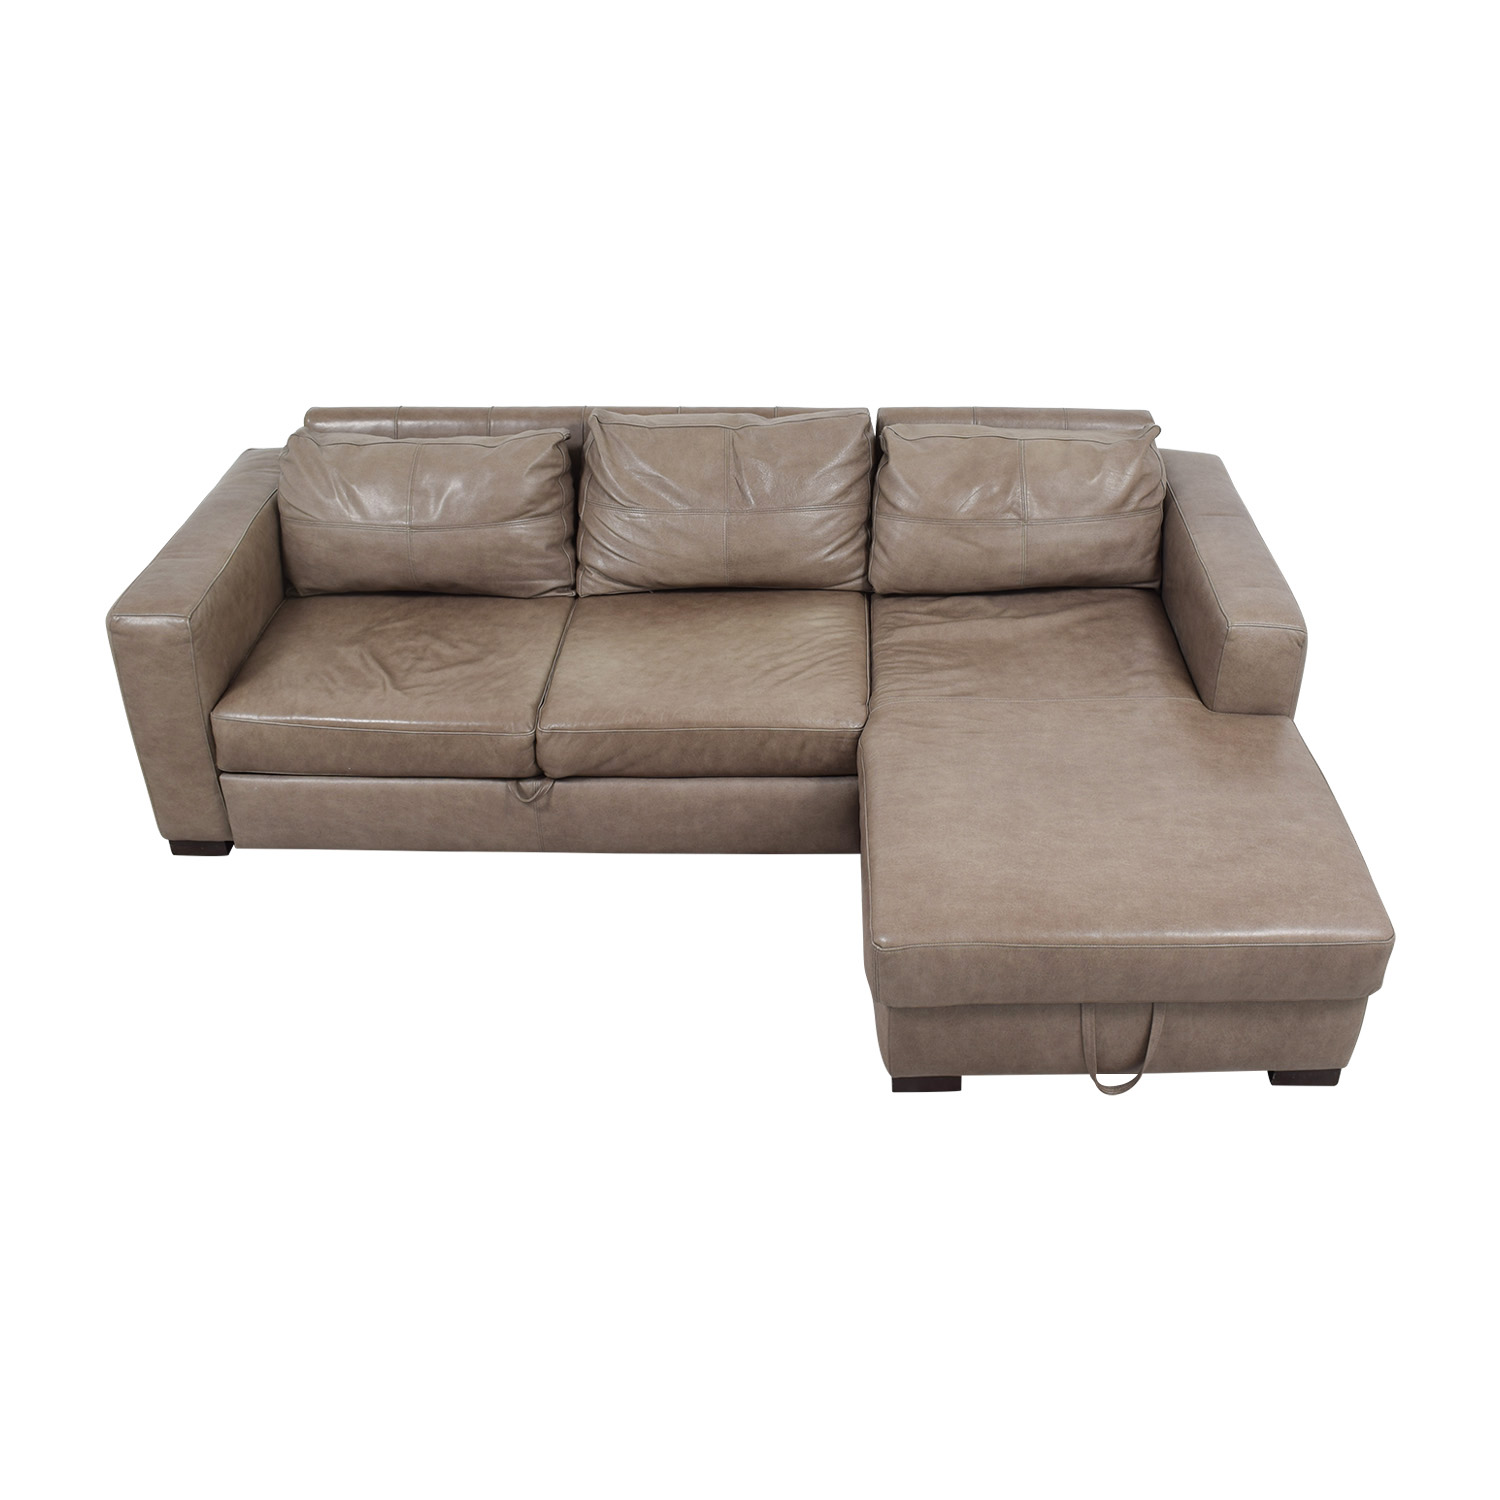 Arhaus Grey Soft Leather Convertible Sleeper Sofa Arhaus